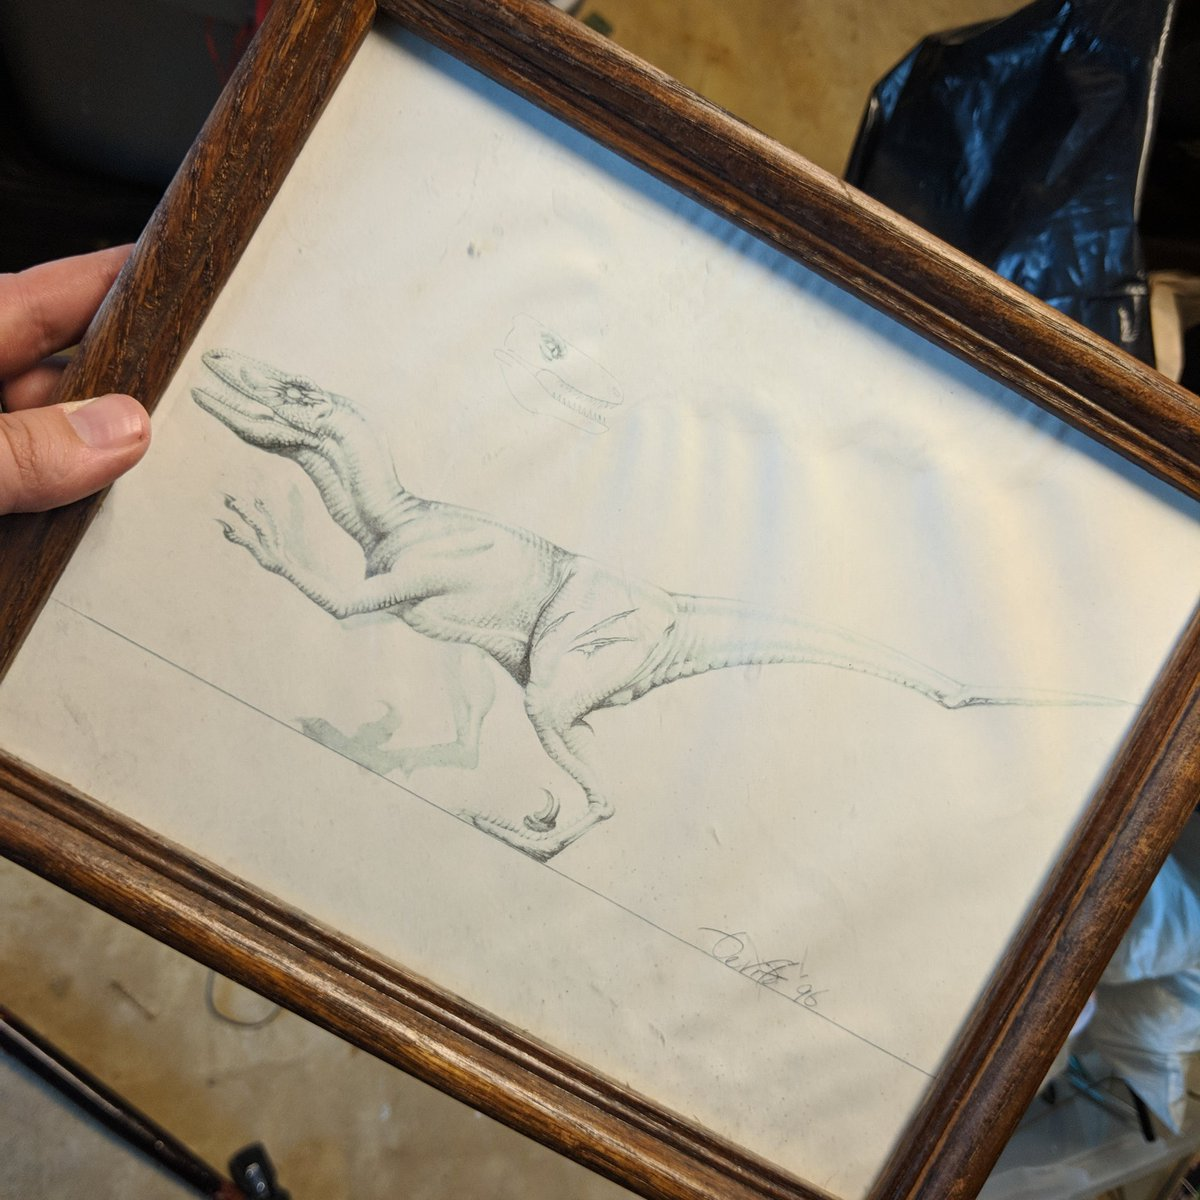 I thought I lost it. One of the original sketches for TLW toy. The Cyclops Raptor. @BradJost @JurassicParkPod @JurassicOutpost<br>http://pic.twitter.com/TFduLNH8yt